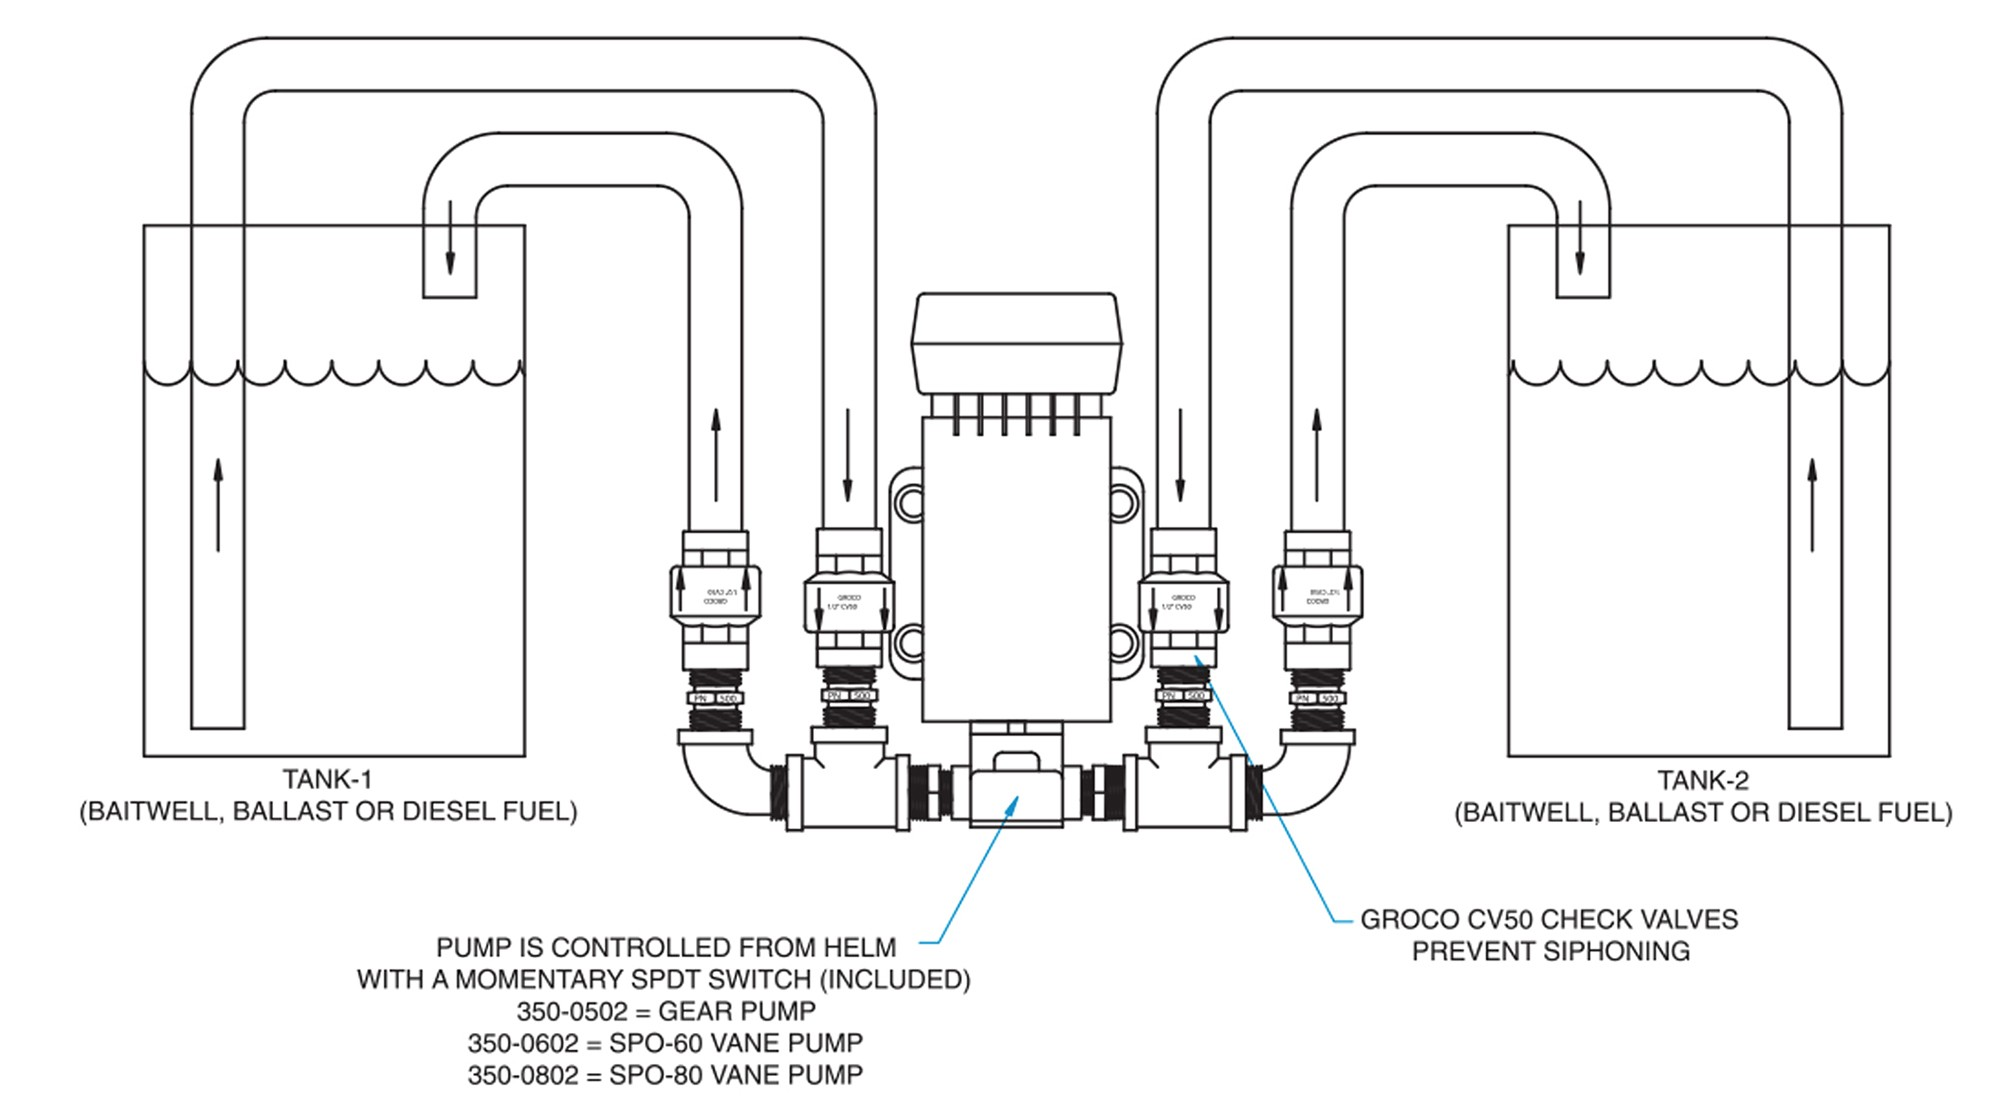 4 Way Switch Overview